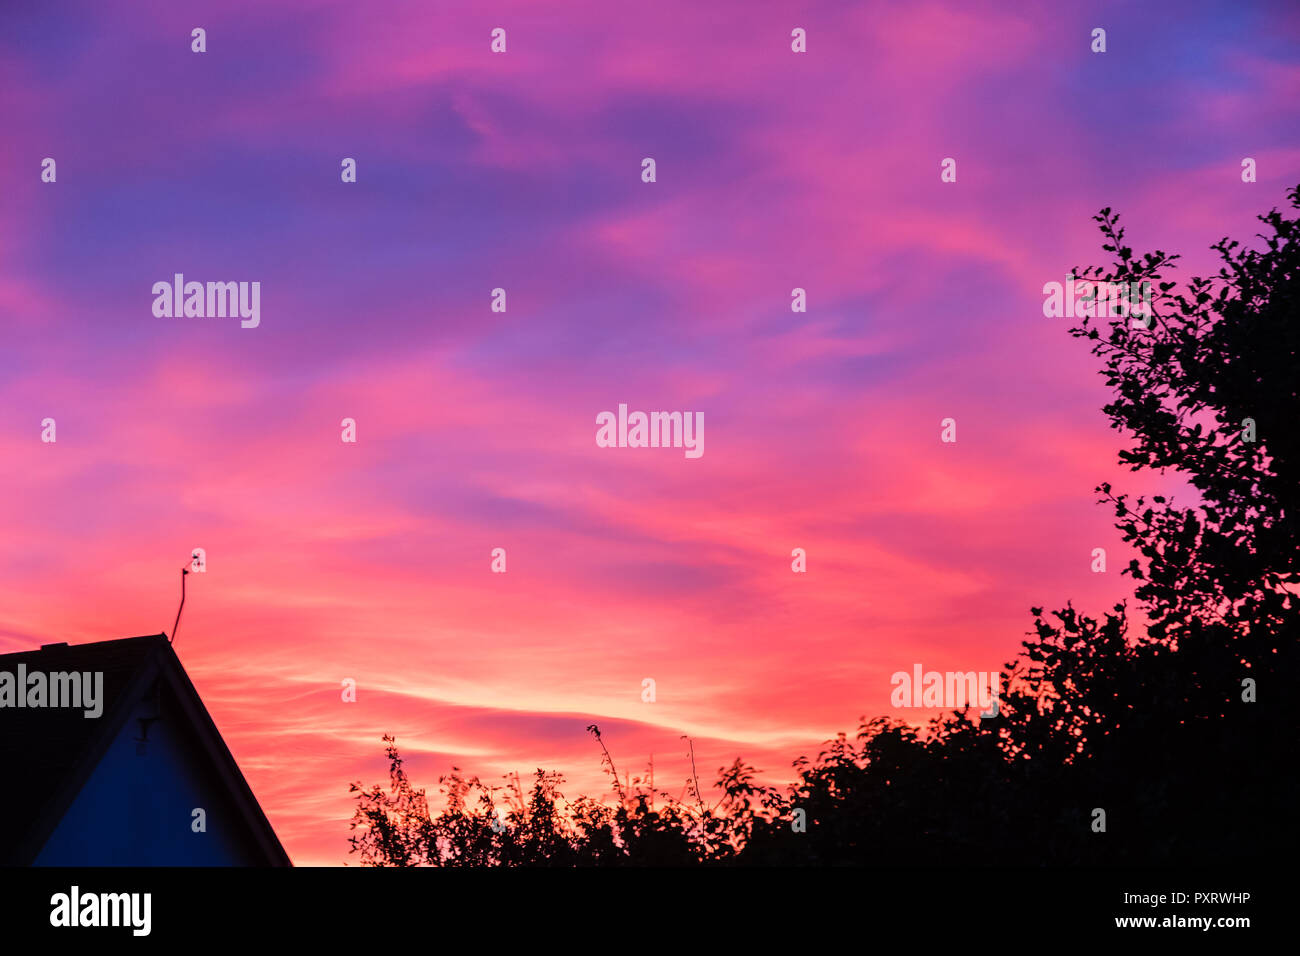 East Budleigh. 23rd Oct 2018. UK Weather: Being a country area with plenty of hills and clean air, the skys are often spectacular. Credit: Peter/Alamy Live News - Stock Image